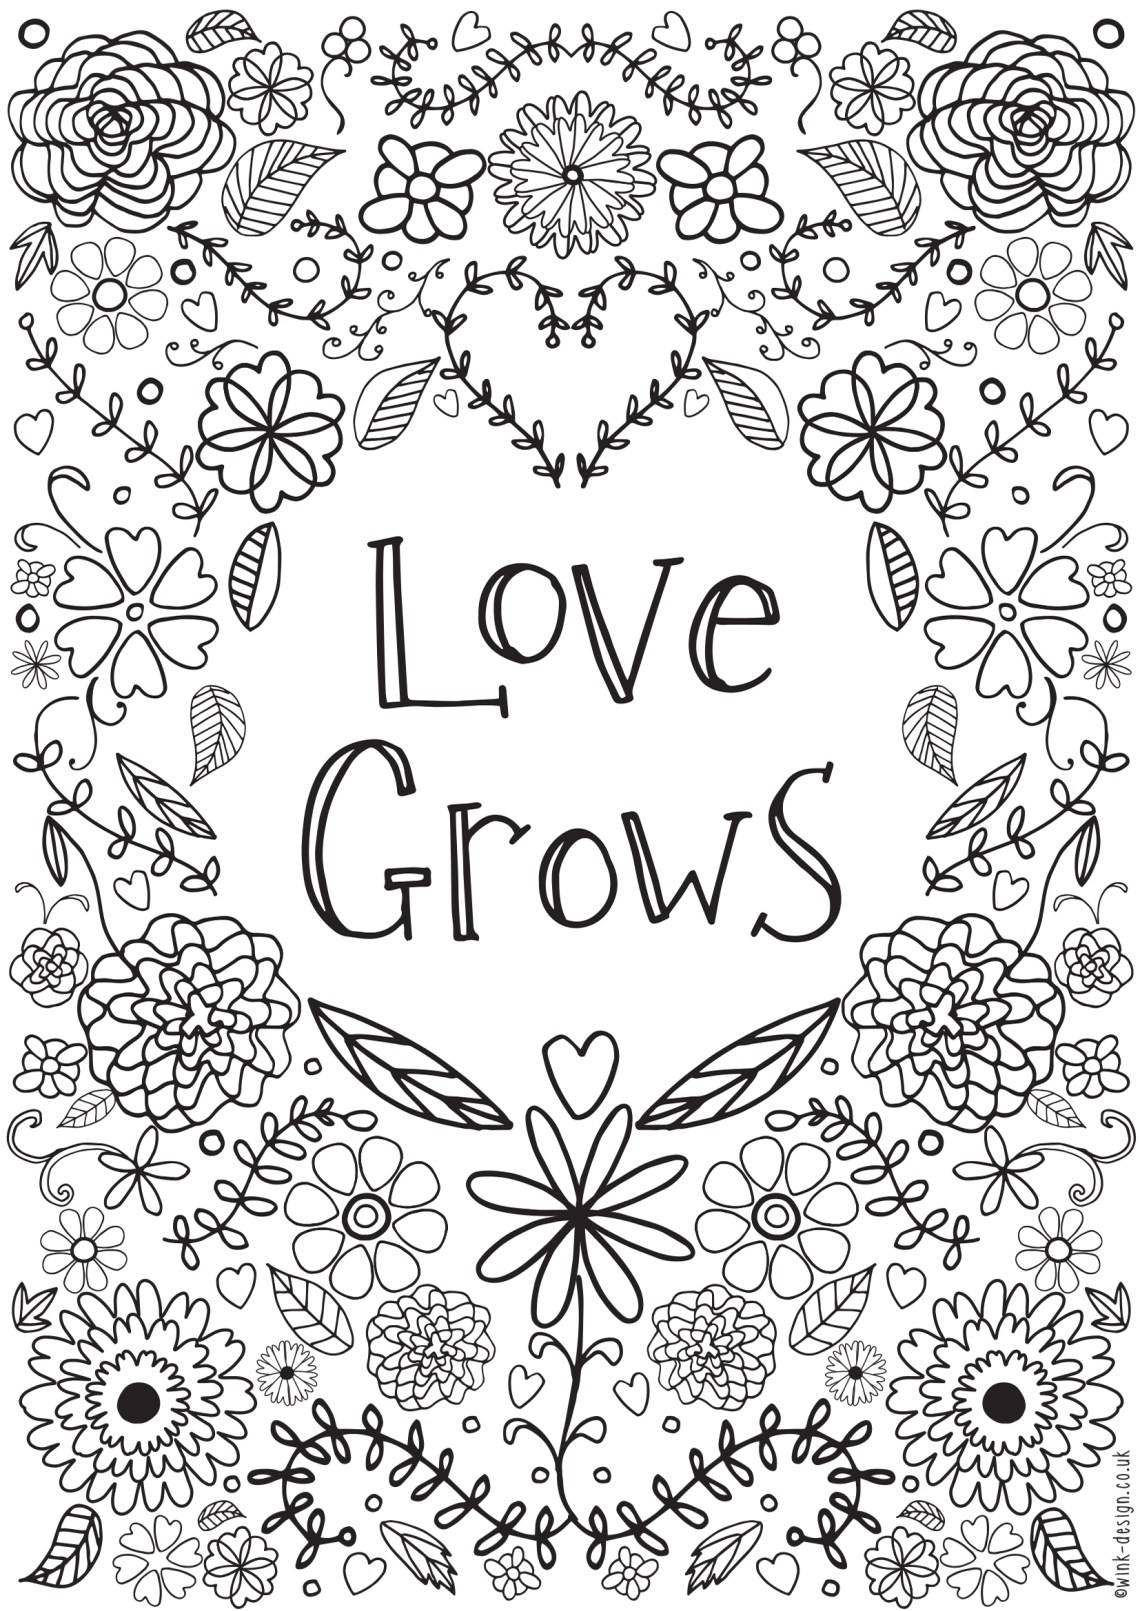 Free printable adult colouring pages for the New Year ... | free online coloring pages for adults funny